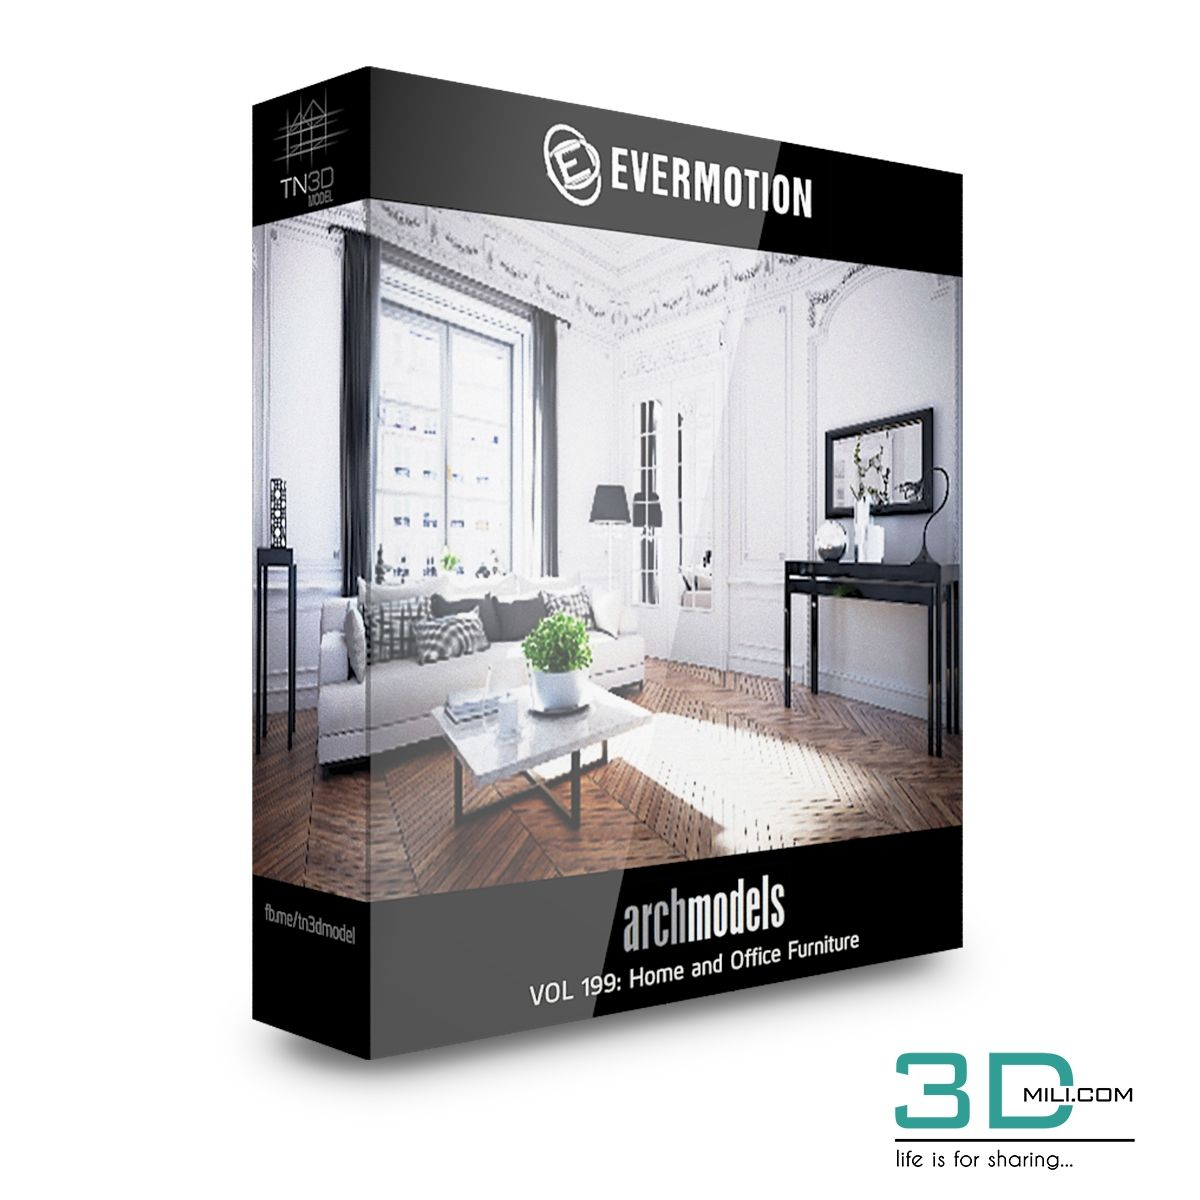 Evermotion Archmodels Vol 199: Home And Office Furniture